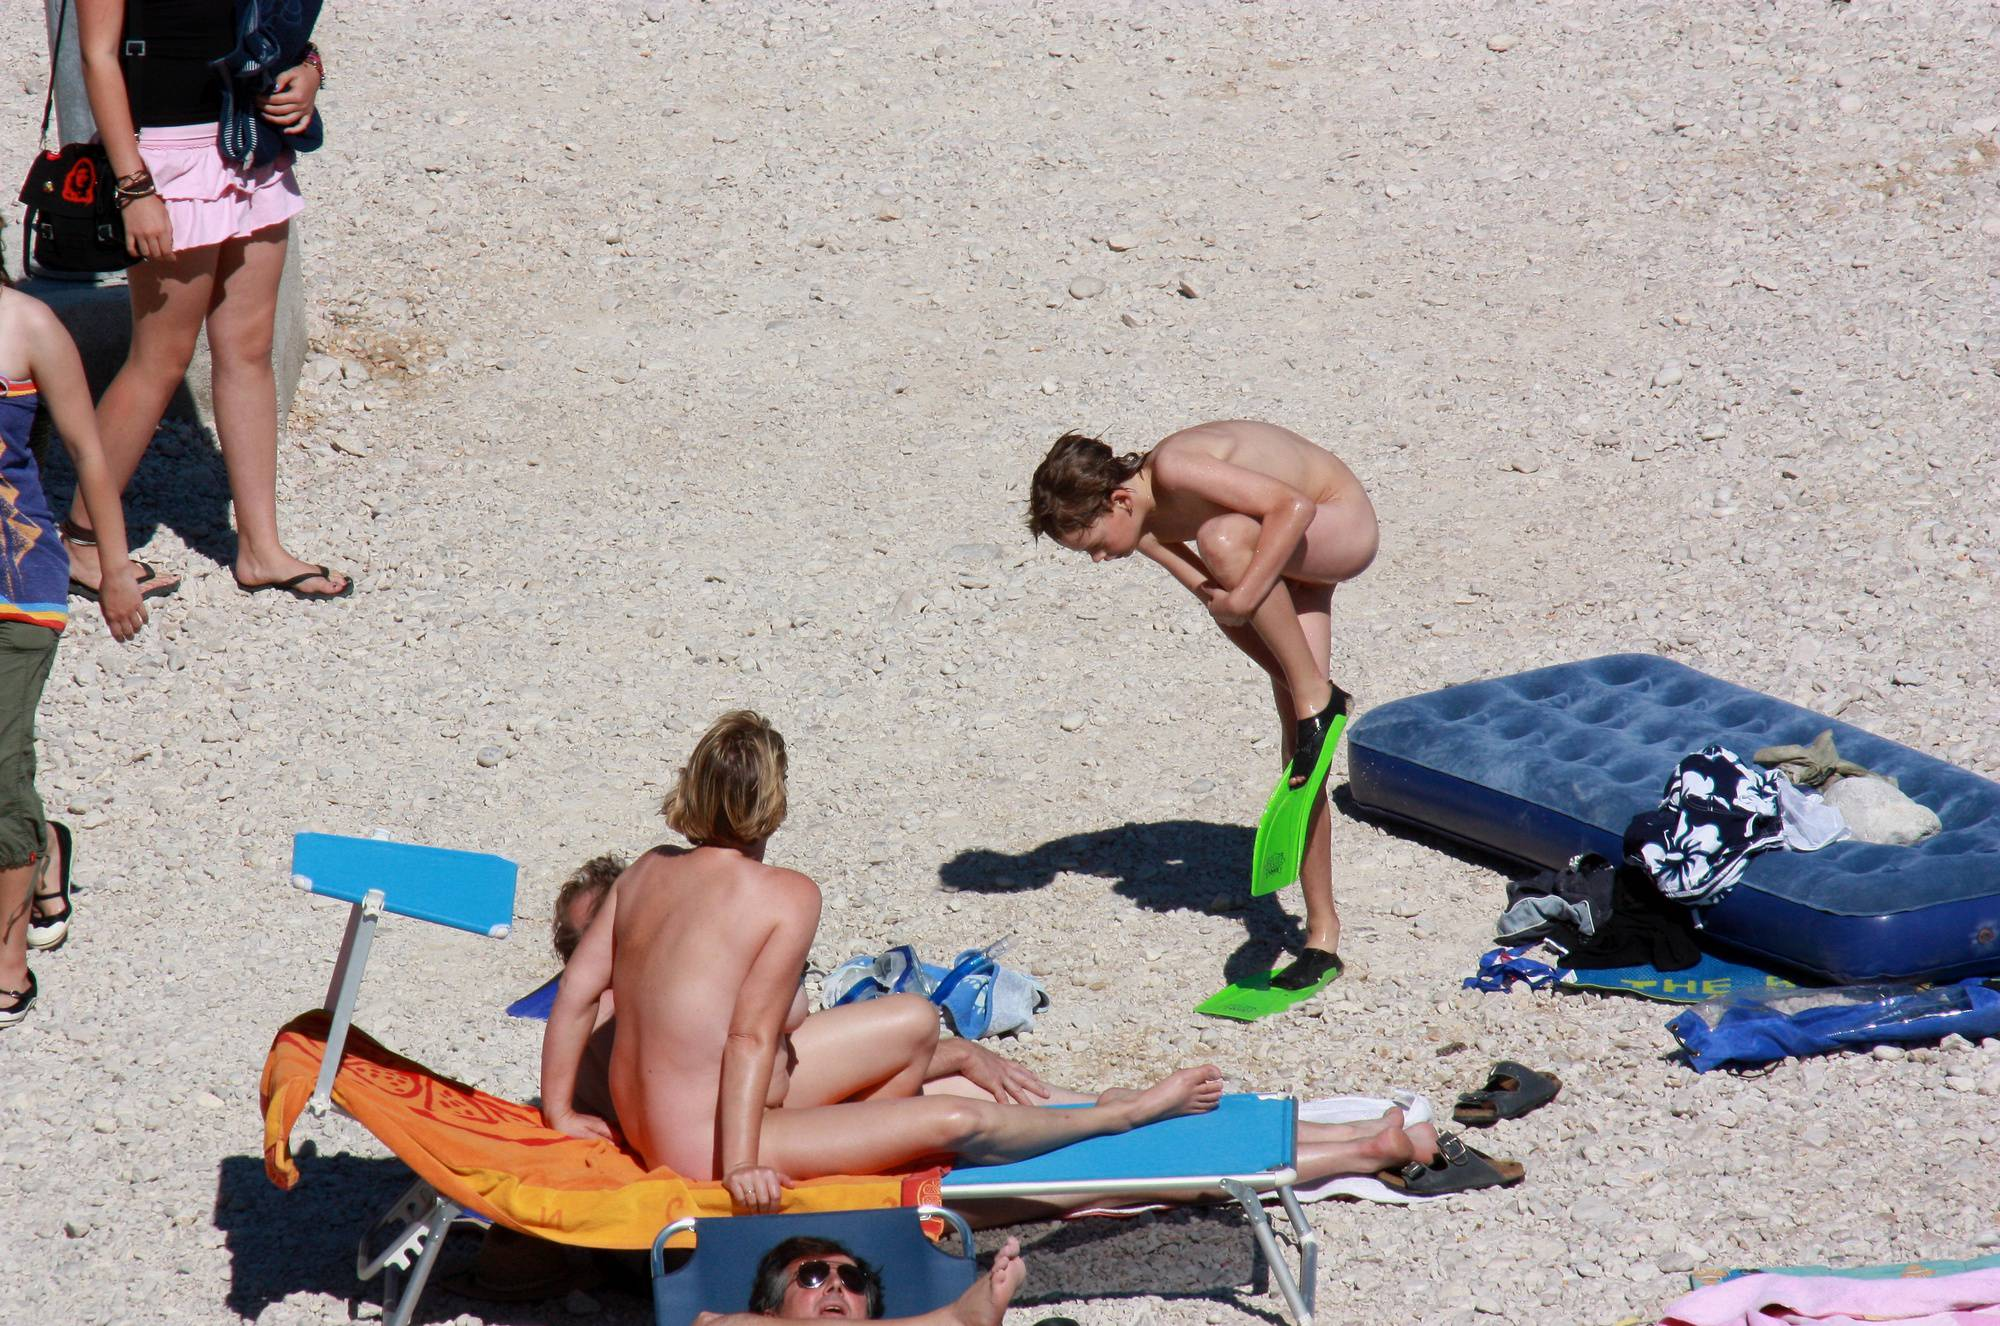 Nudist Family Beach Look - 1